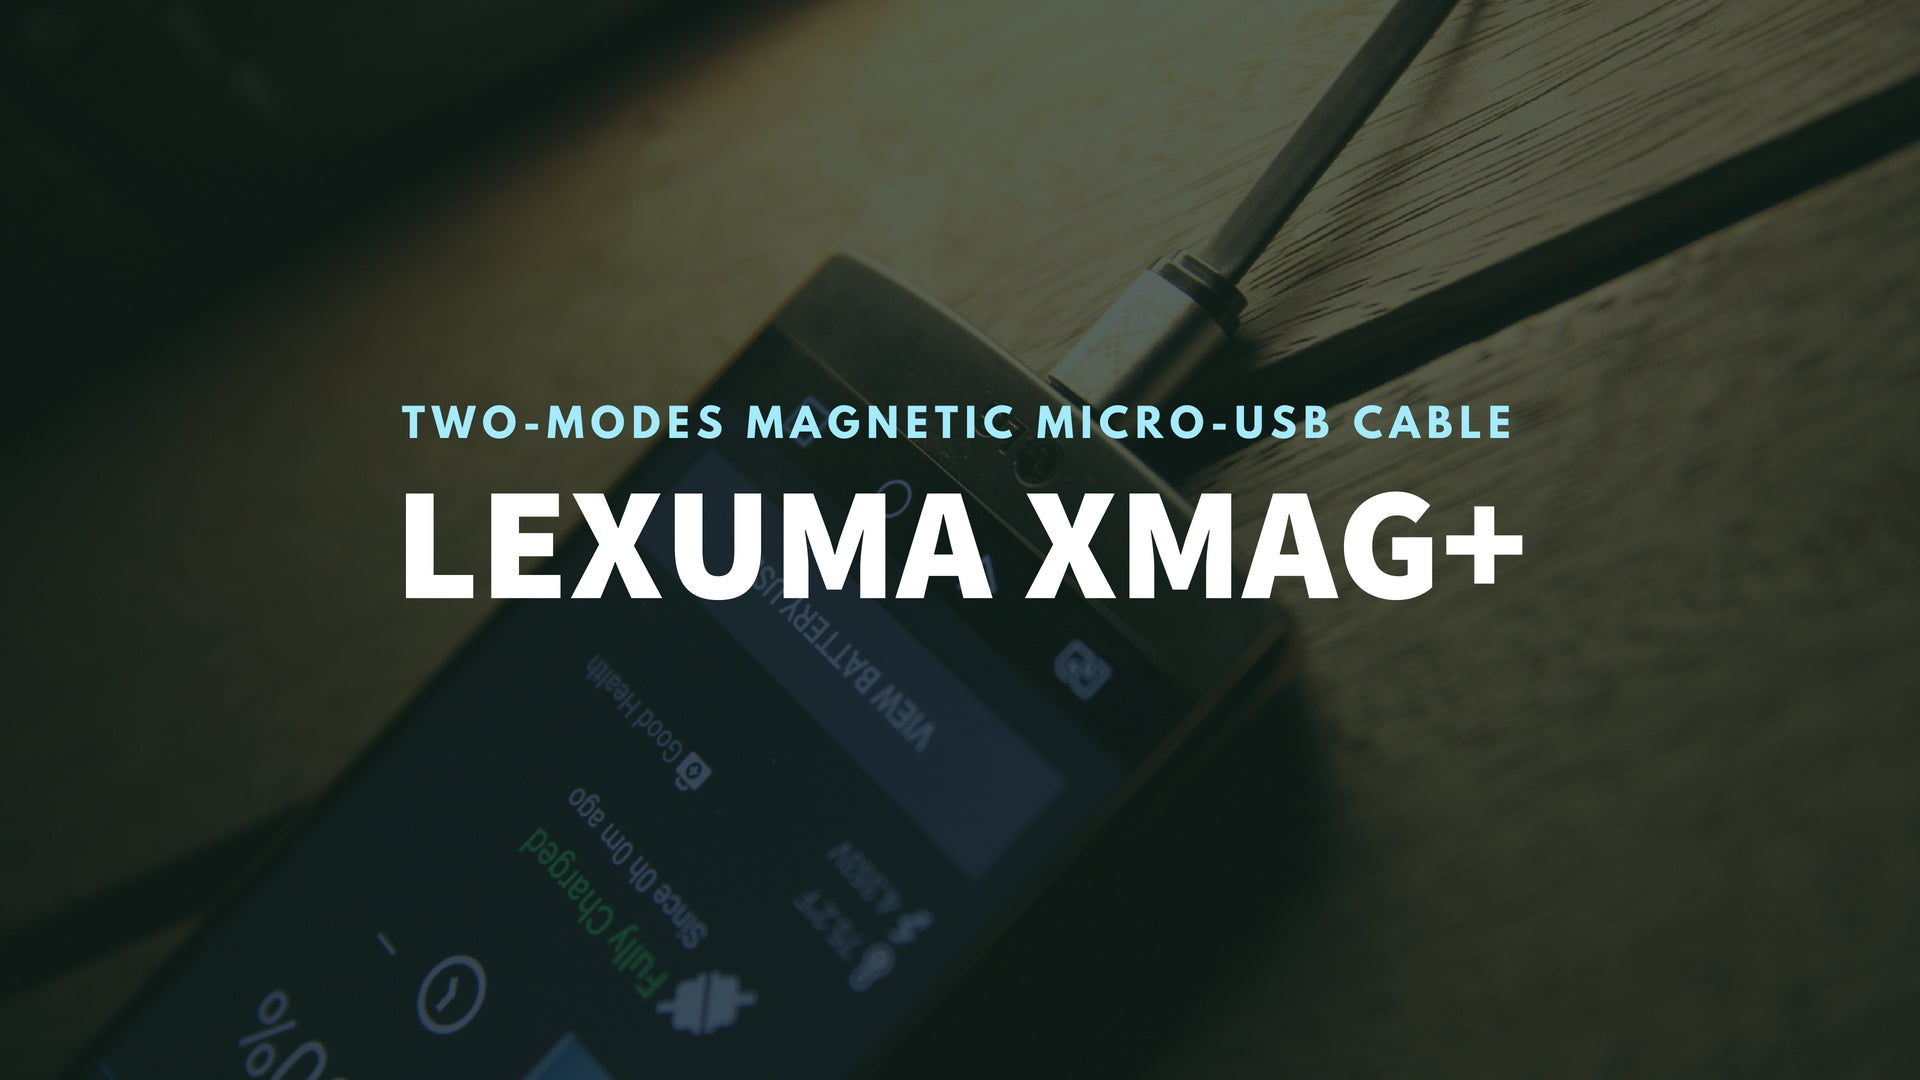 Lexuma 辣數碼 mirco usb 充電線 XMAG-MUC-PLUS Magnetic Micro USB Charging Cable micro usb magnetic adapter magnetic charging cable usb c best magnetic charging cable 2019 micro usb to magnetic charger adapter magnetic connector magnetic charging cable review volta magnetic cable magnetic charging cable data transfer magnetic charging cable android magnetic usb adapter magnetic charging cable type c trilobi magnetic cable apple device accessories 2 in 1 charger cable trilobi magnetic cable banner